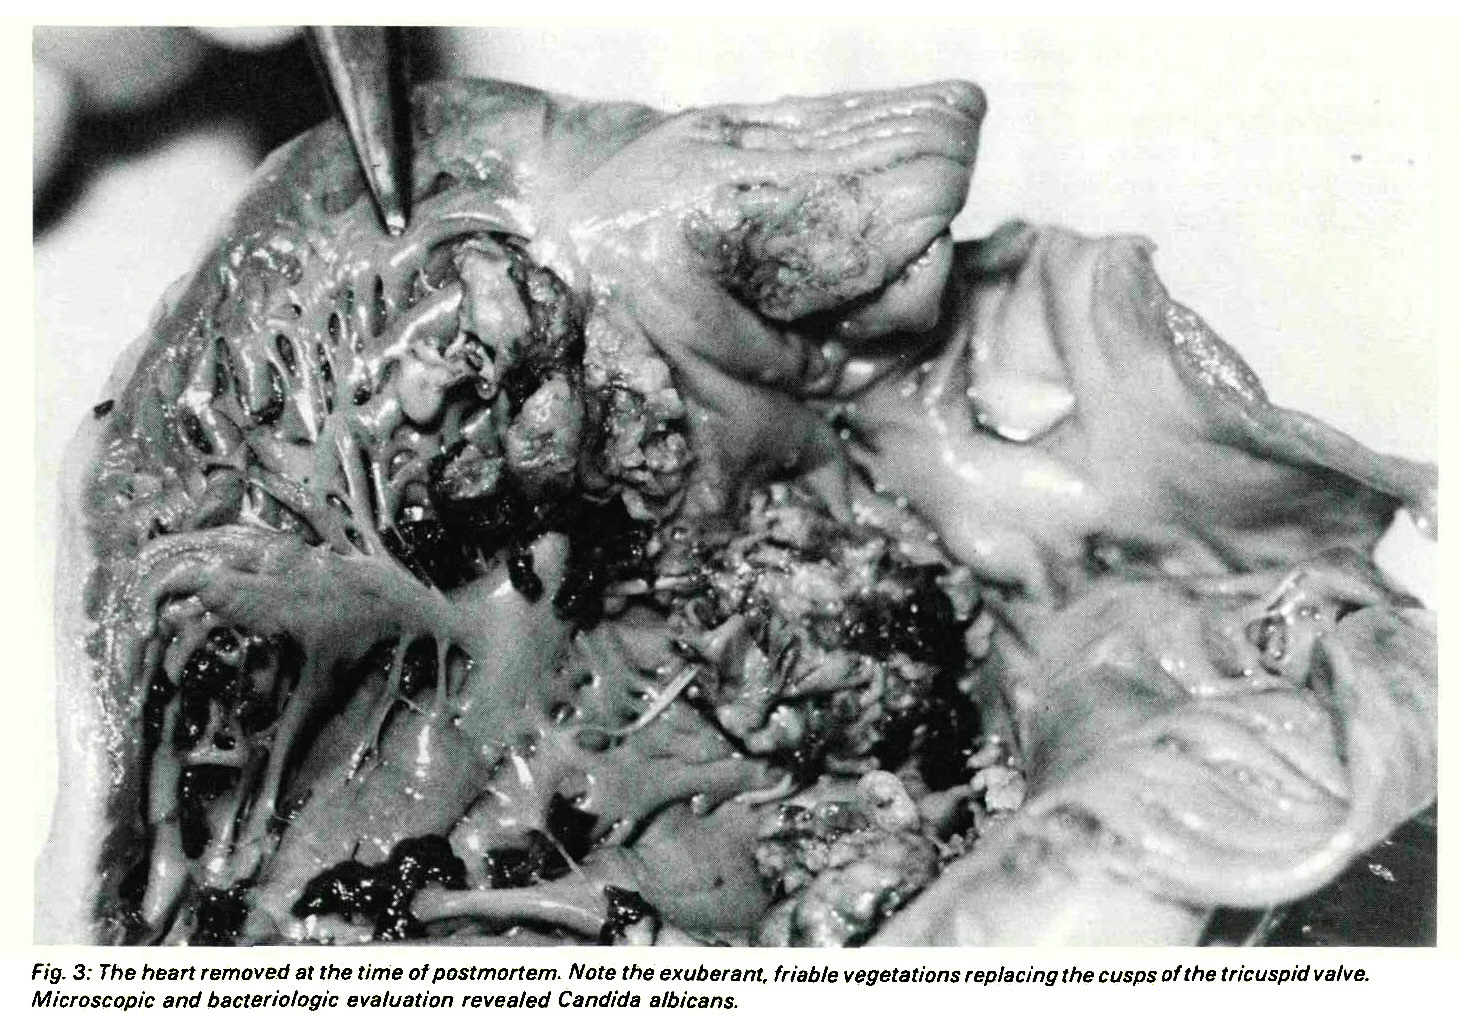 Fig. 3: The heart removed at the time of postmortem. /Vofe the exuberant, friable vegetations replacing the cusps of the tricuspid valve. Microscopìe and bactériologie evaluation revealed Candida albicans.